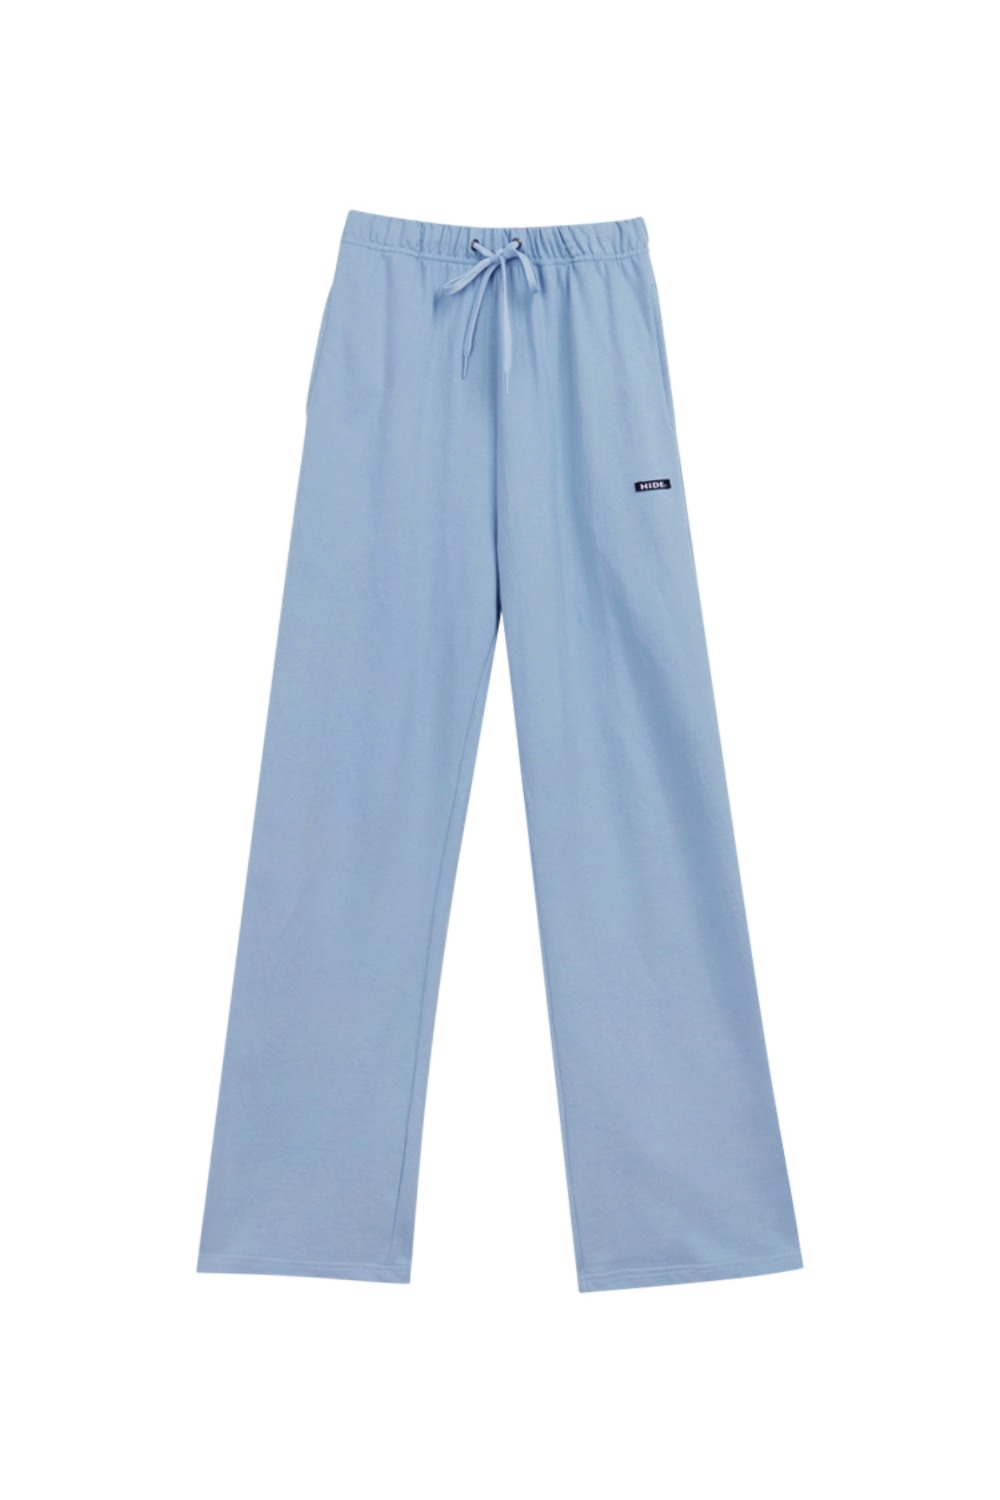 HIDE Mirror Wide Pants SKY BLUE